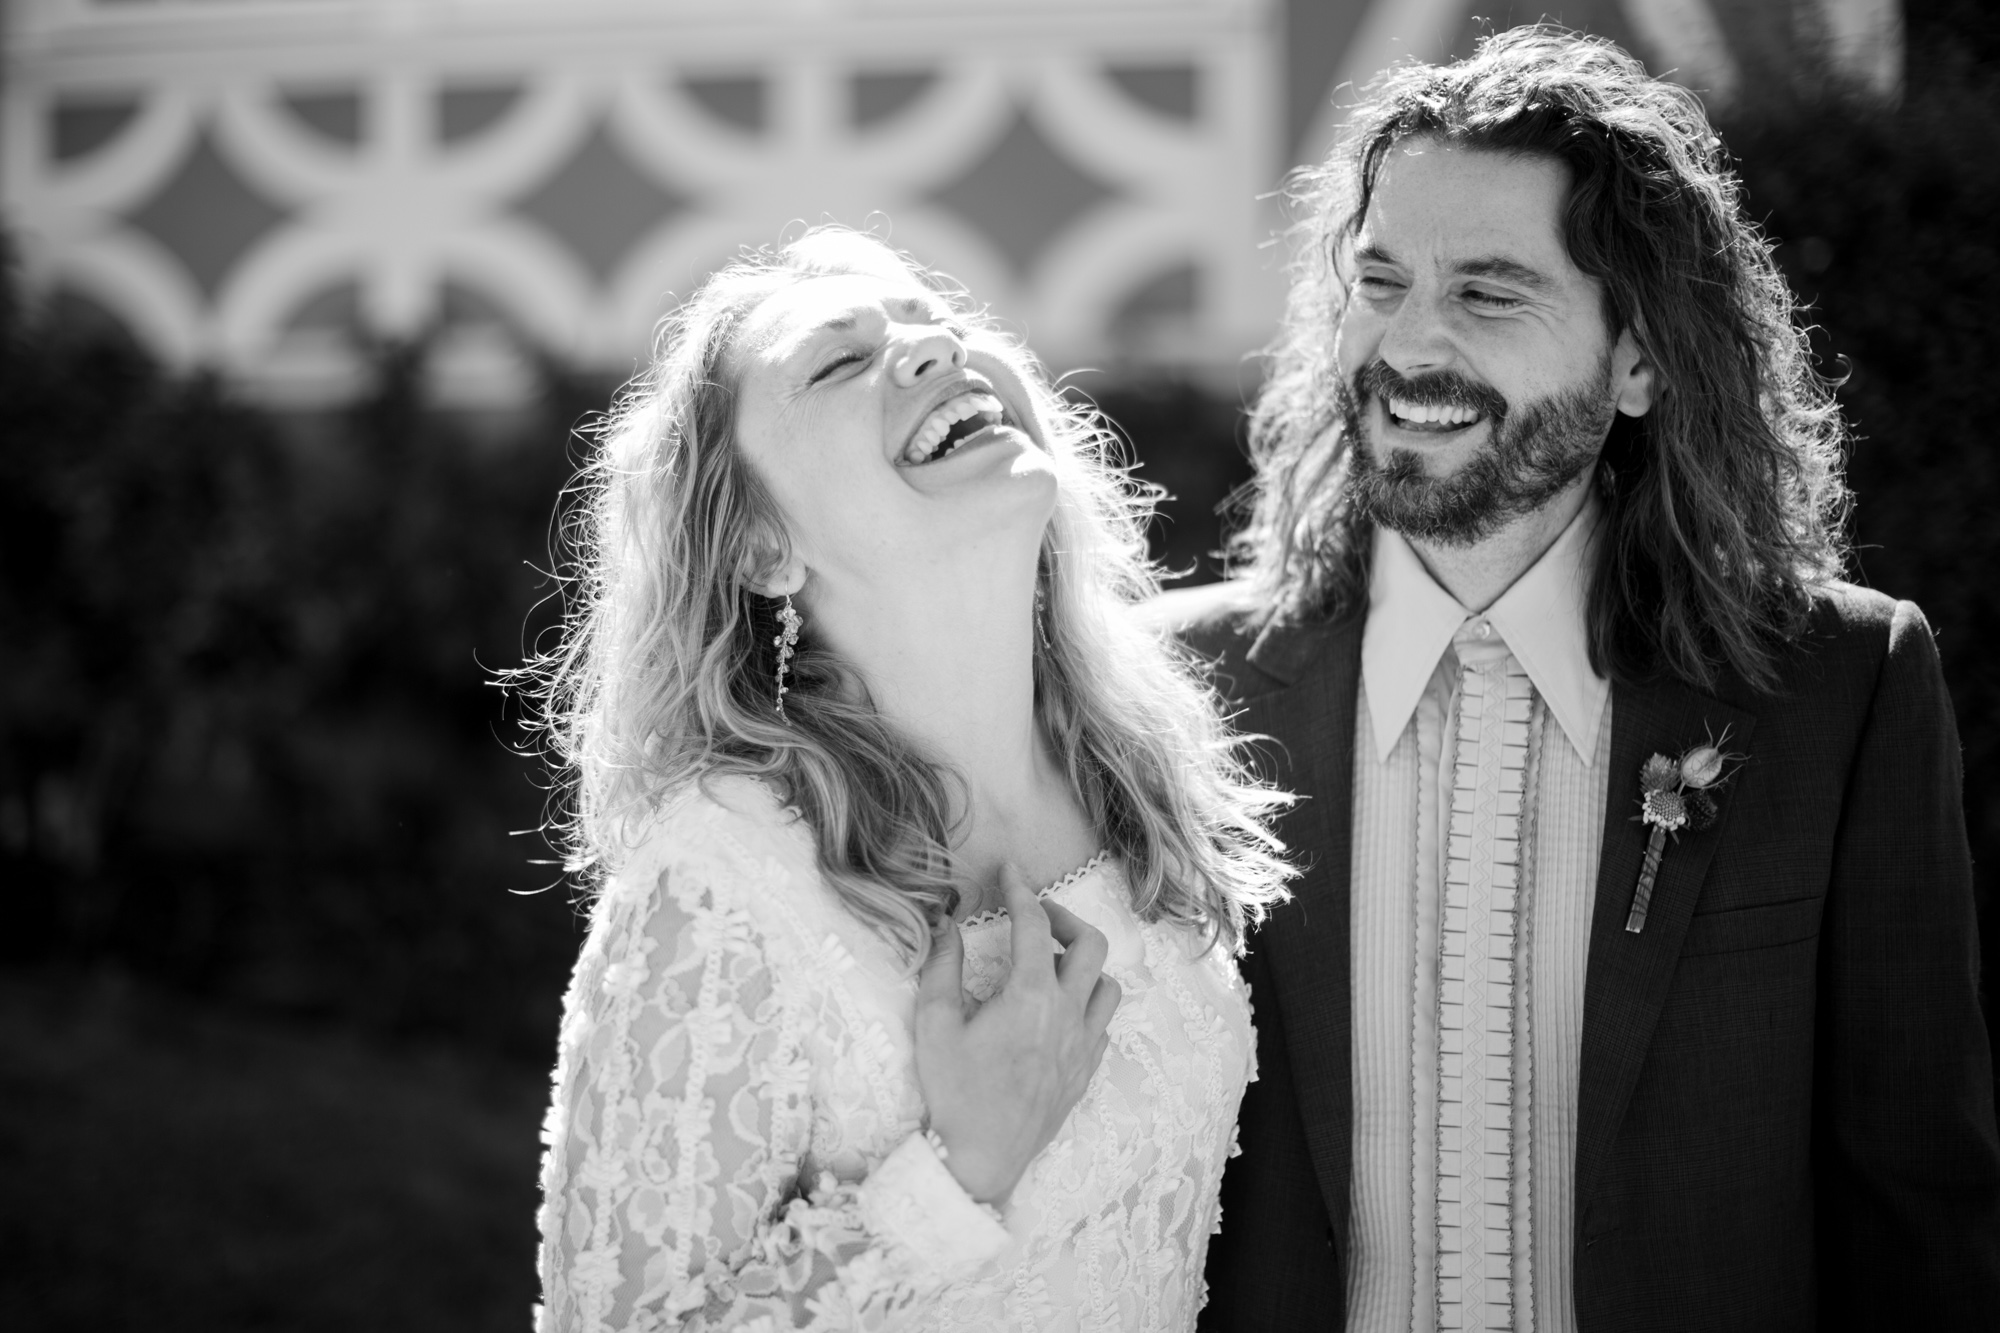 A wedding couple laugh together.